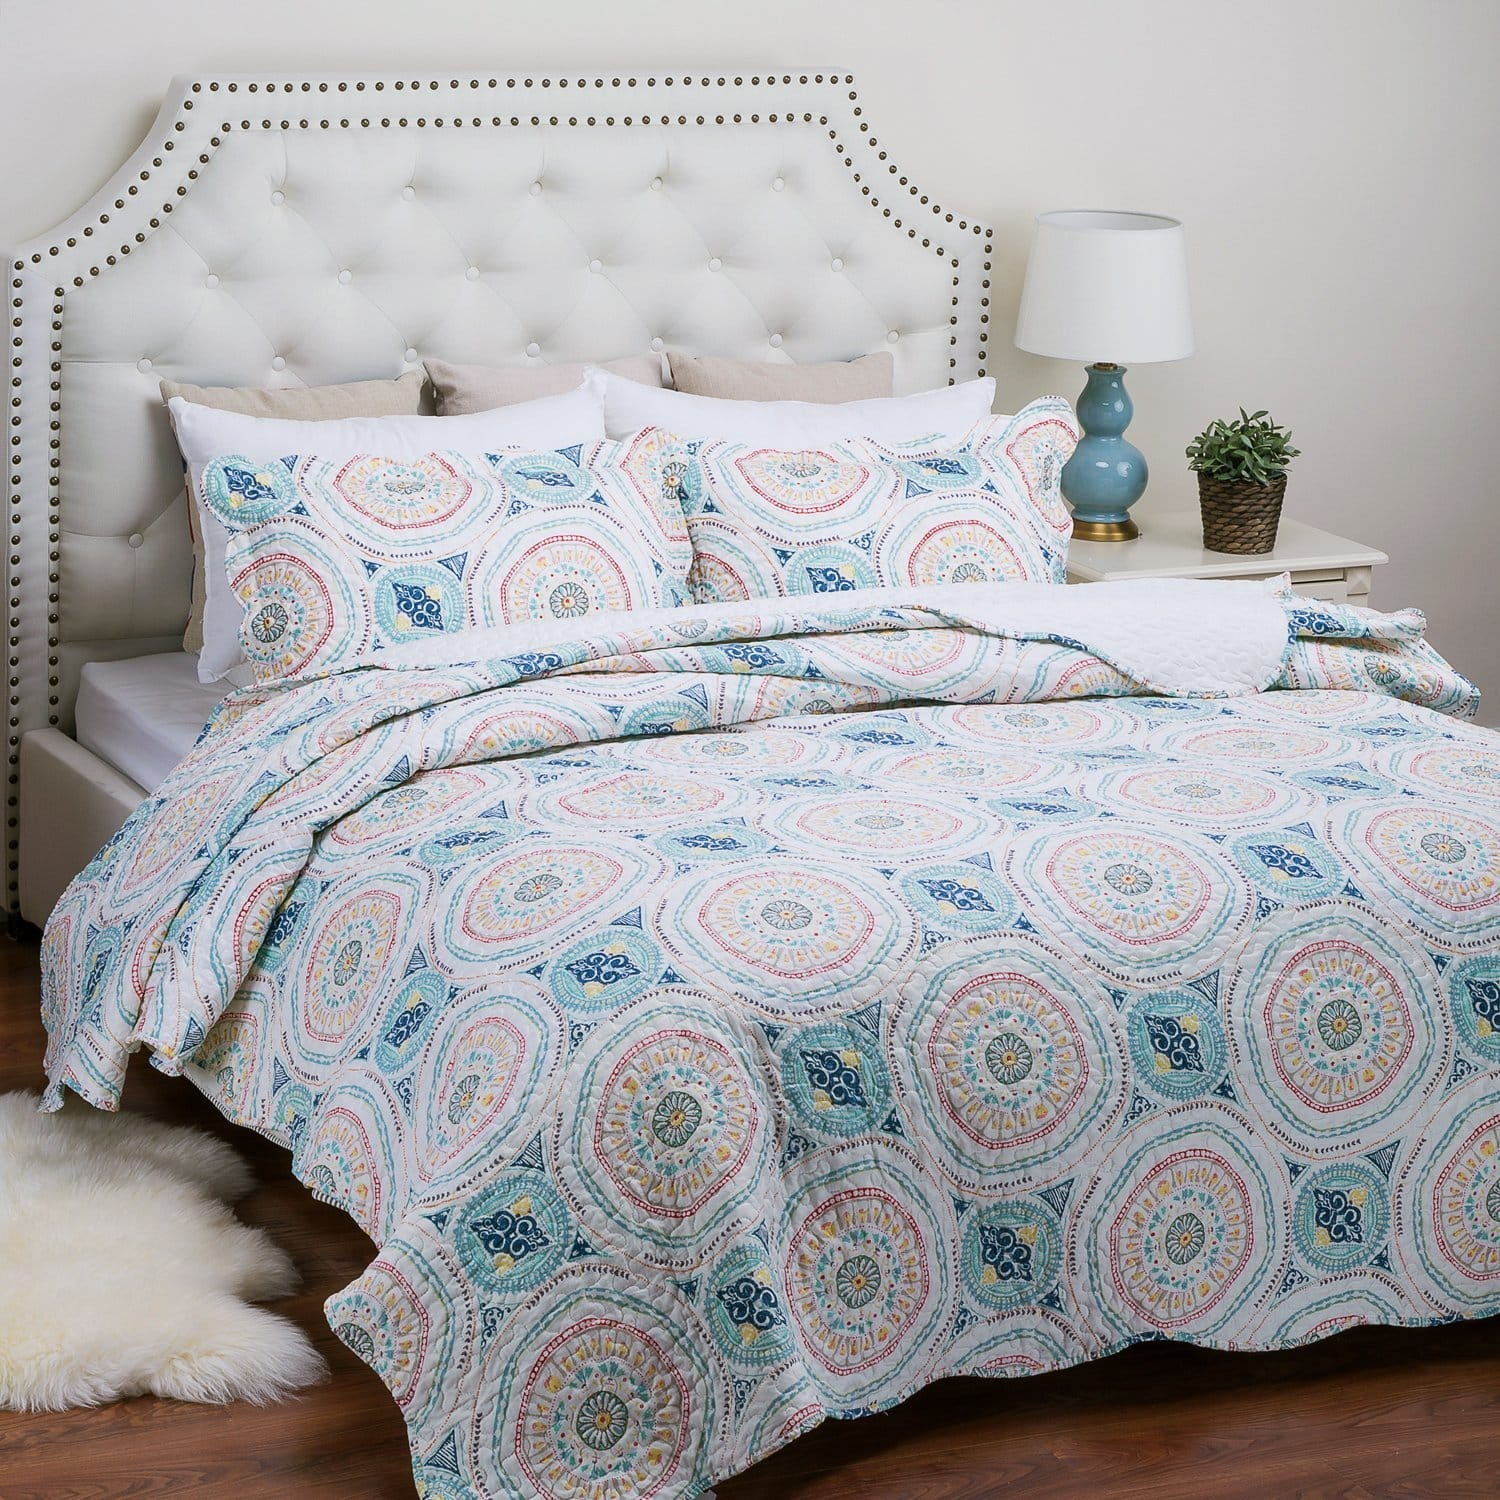 Printed Quilt Coverlet Set 35% off